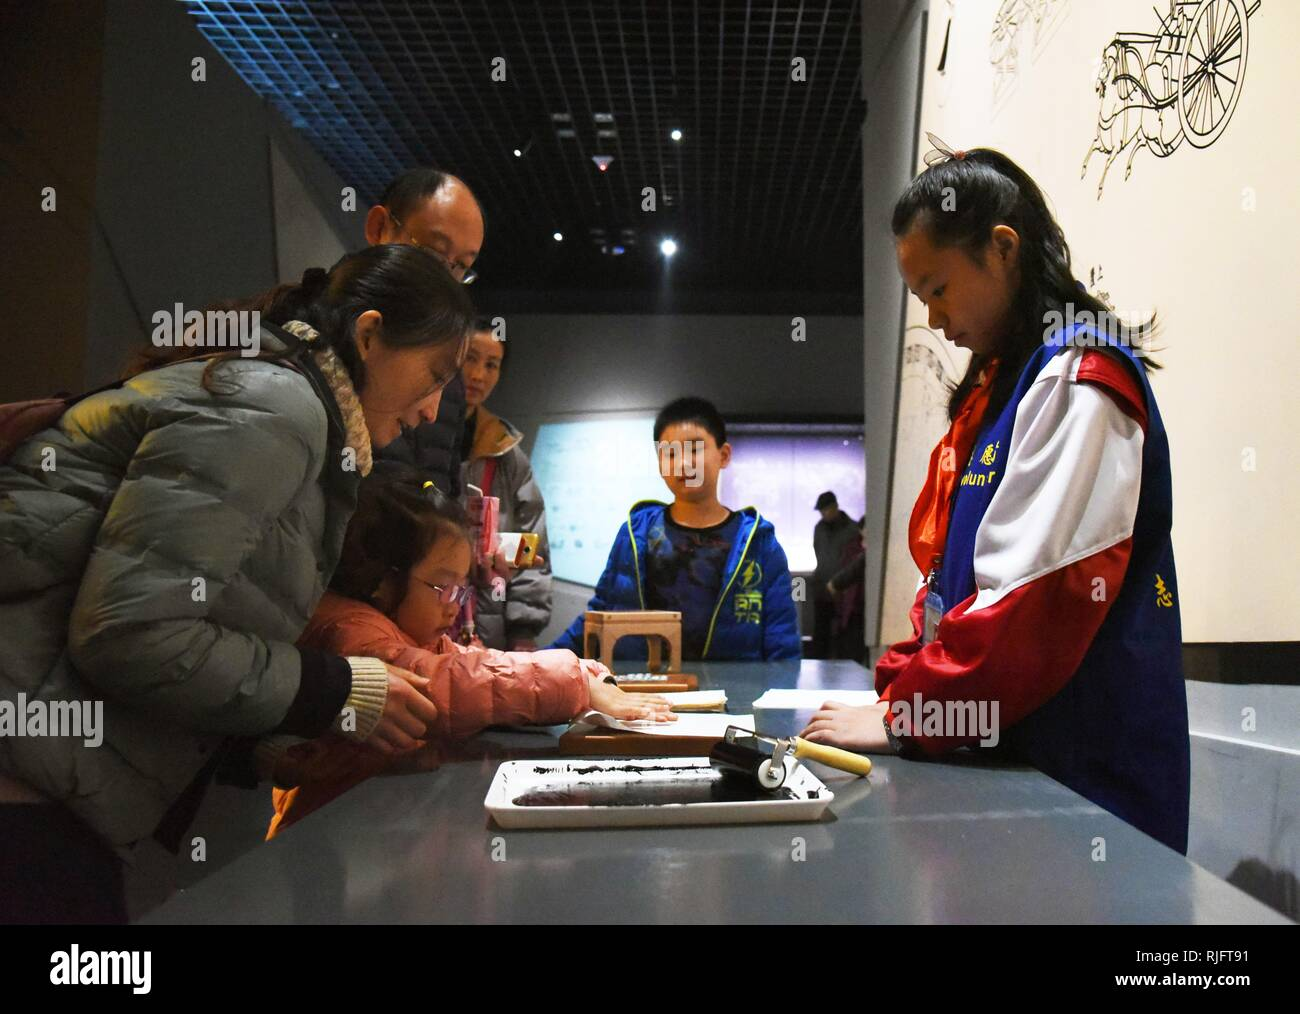 (190206) -- JINAN, Feb. 6, 2019 (Xinhua) -- A girl accompanied by her parents experiences the processes of movable-type printing at Shandong Museum in Jinan, east China's Shandong Province, Feb. 6, 2019. Shandong Museum witnessed lots of citizens and tourists on its first opening day during the Spring Festival. (Xinhua/Wang Kai) - Stock Image